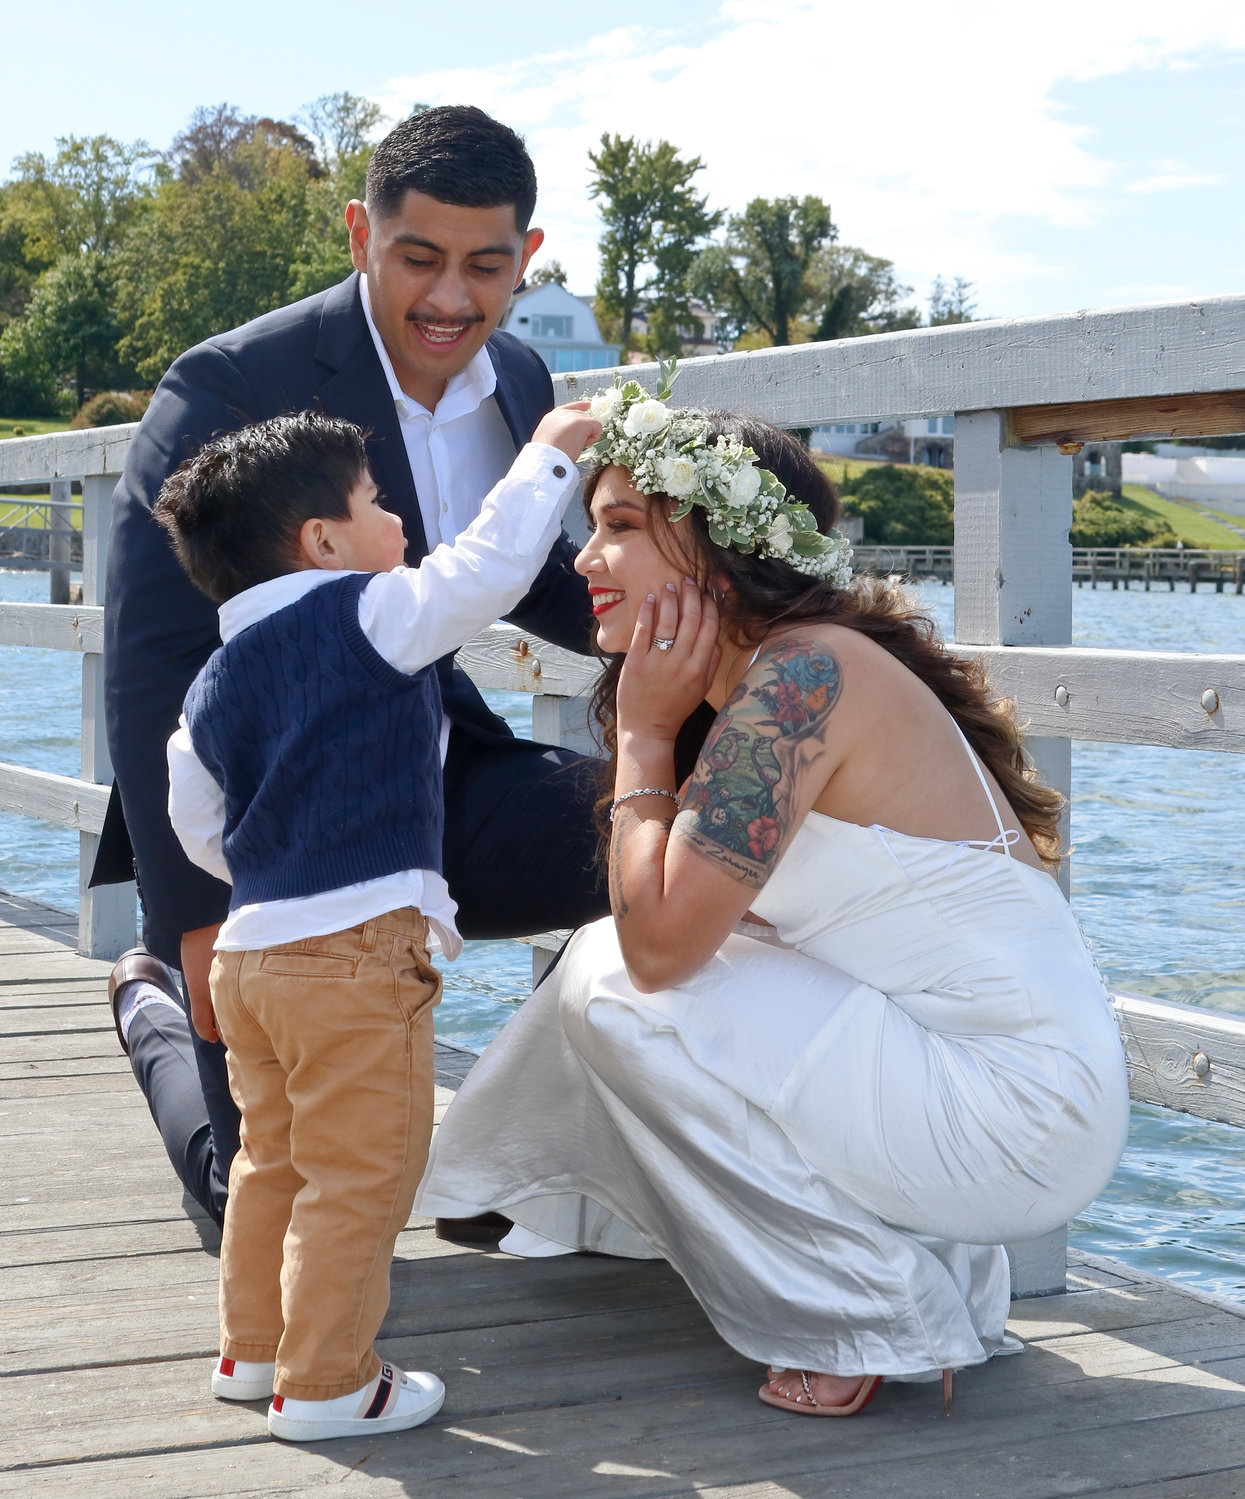 Ryan and Samantha Chavarria were with their son Alexander, 2, at their socially distanced wedding on Sept. 20.